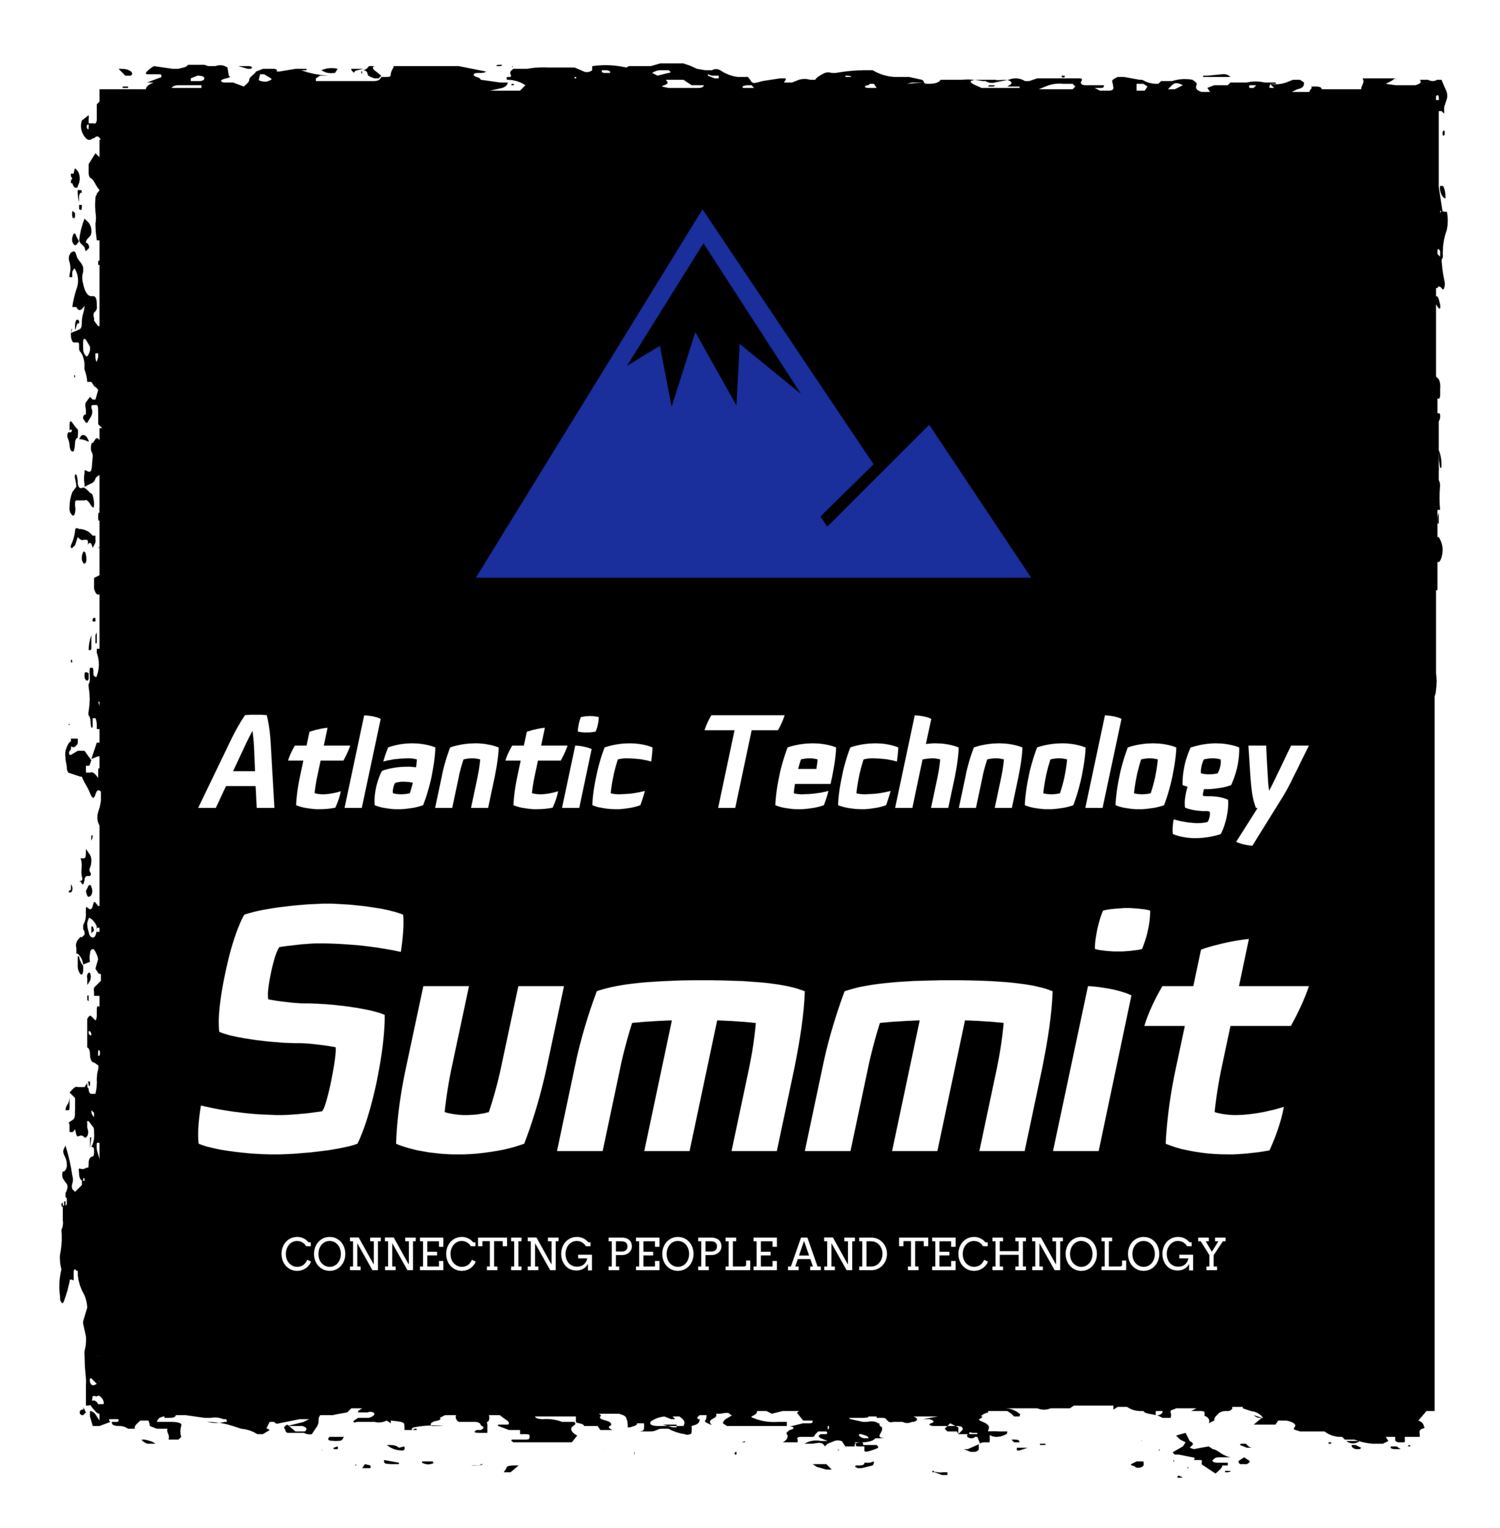 Atlantic Technology Summit